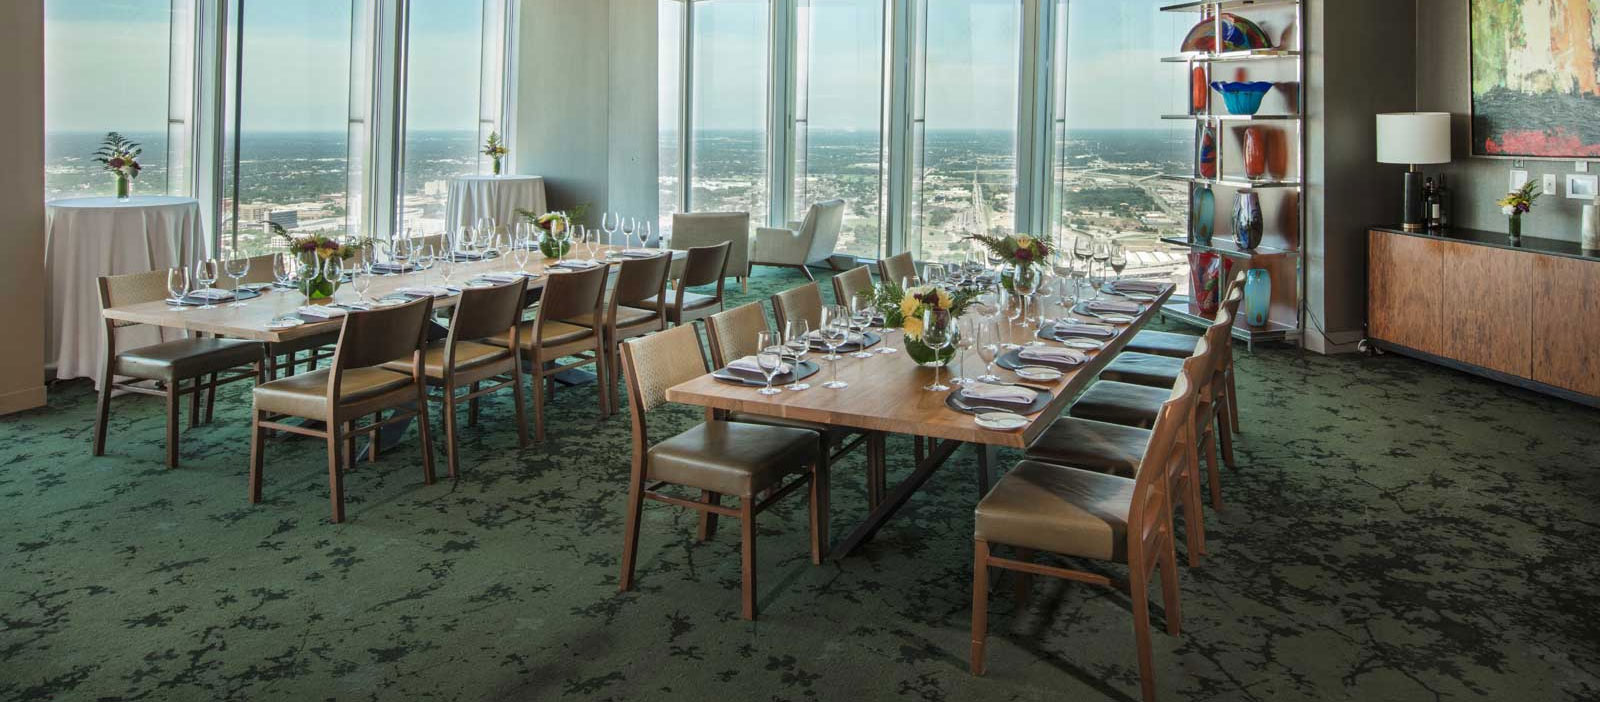 two long dining tables prepared with place settings within an event space with floor to ceiling windows overlooking the city skyline